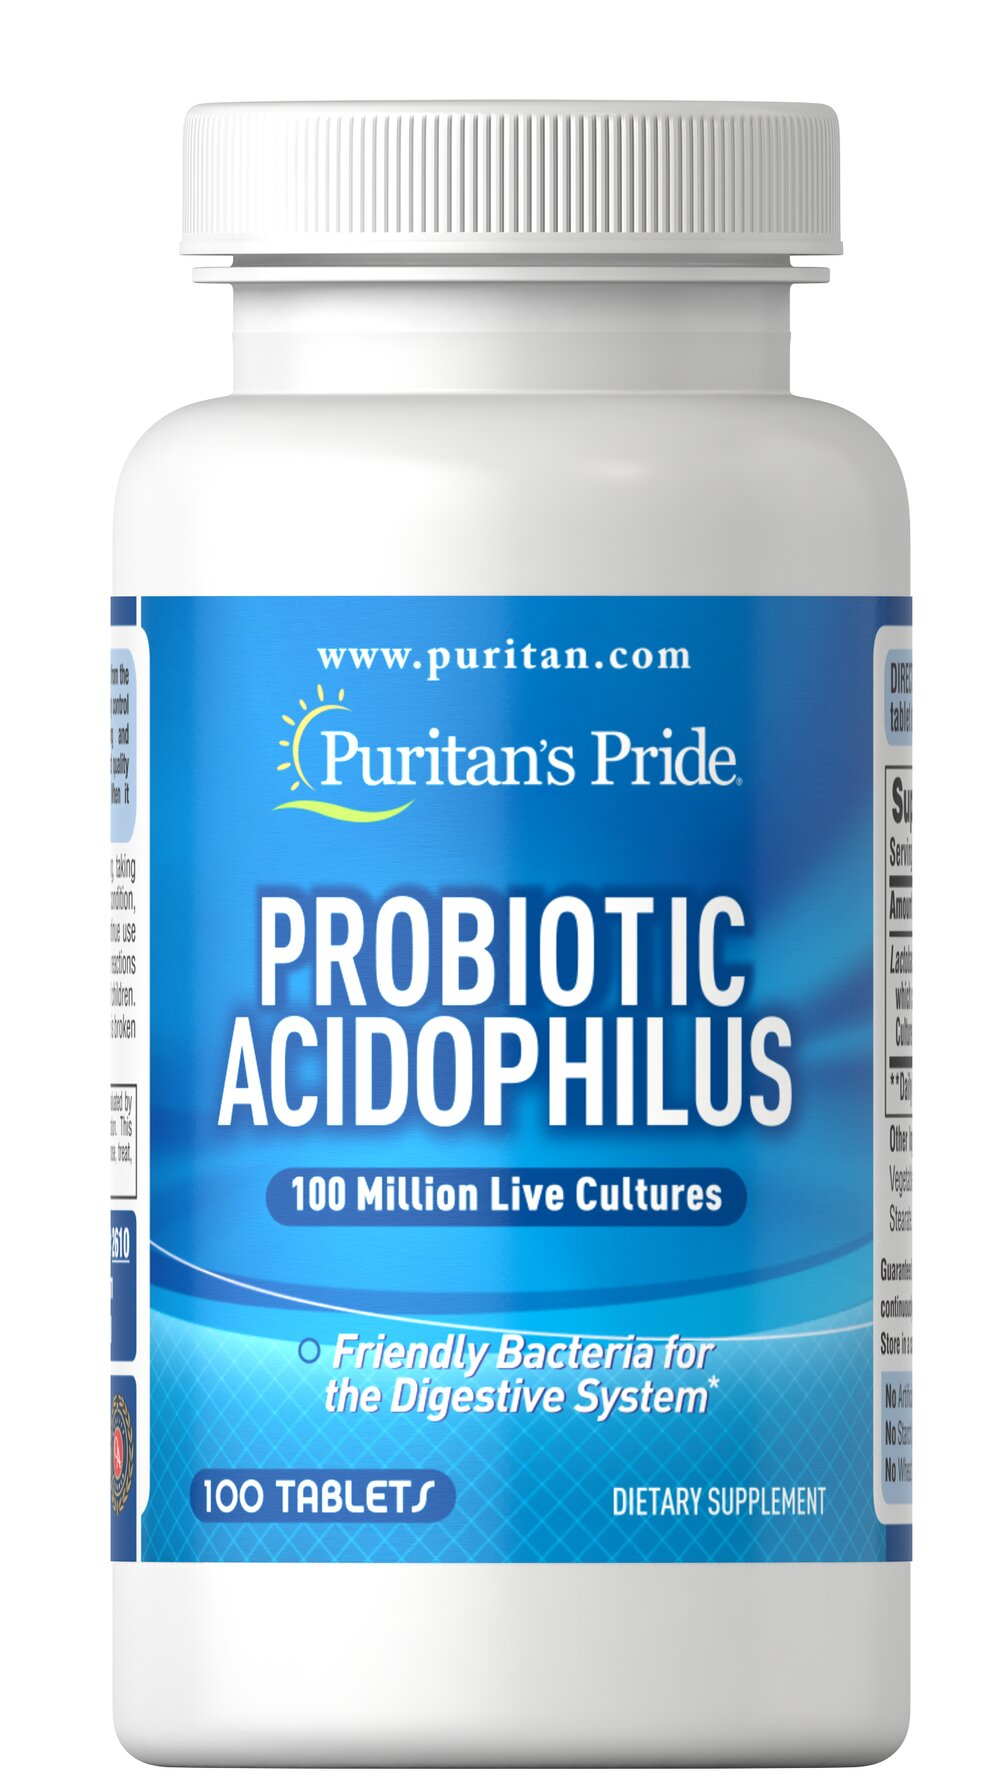 Probiotic Acidophilus <p>Acidophilus is a friendly bacteria naturally found in the intestinal tract.** More than 400 species of bacteria, also called normal flora, live in the adult human GI tract.  Our Probiotic Acidophilus contains over 100 million active Lactobacillus Acidophilus (including the naturally occurring metabolic product produced by Lactobacilli) at the time of manufacture. Adults can take one (1) capsule daily, preferably with a meal.<br /></p> 100 Capsu